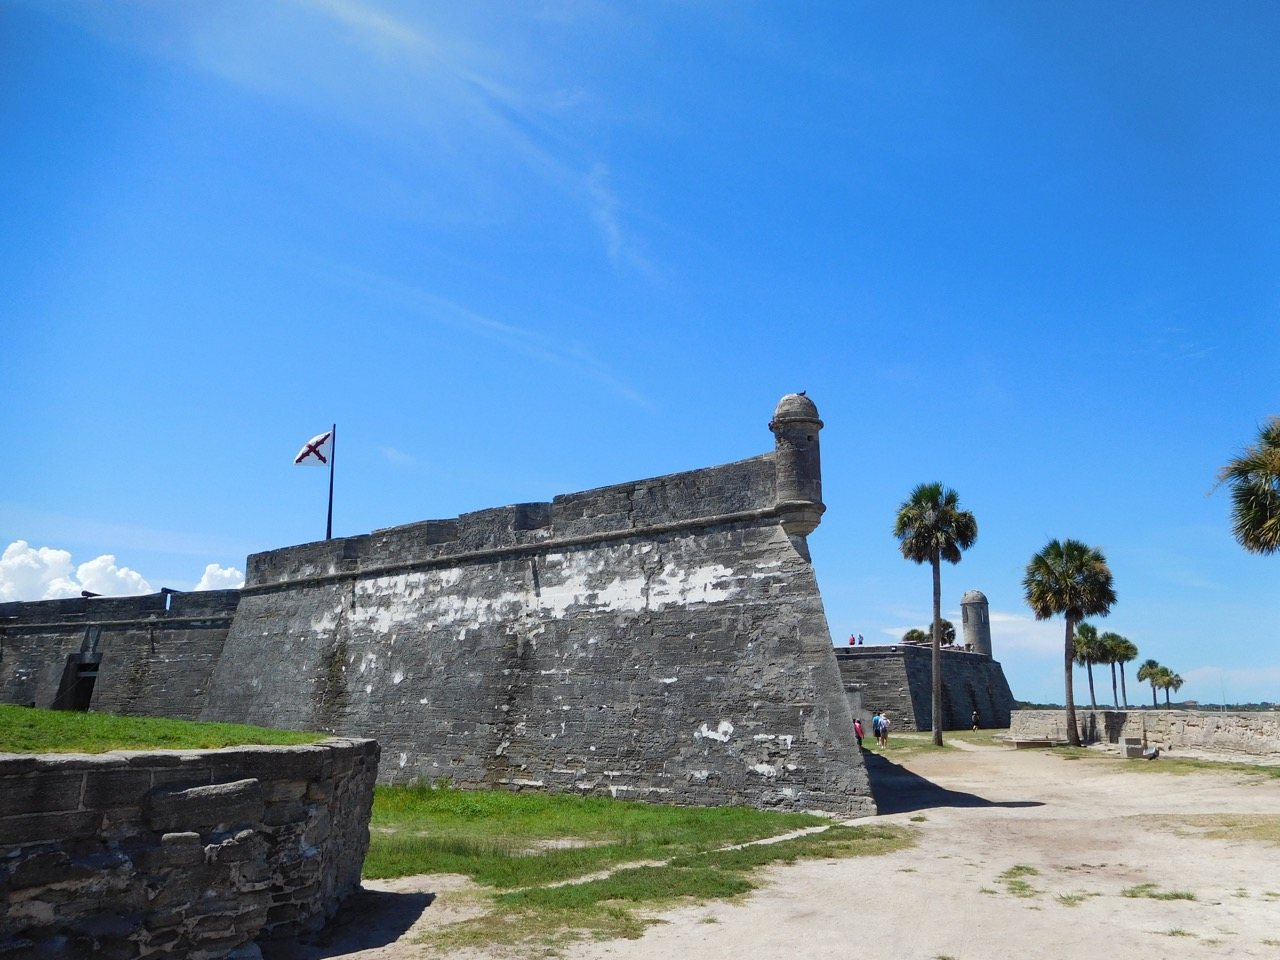 The Fort Matanzas